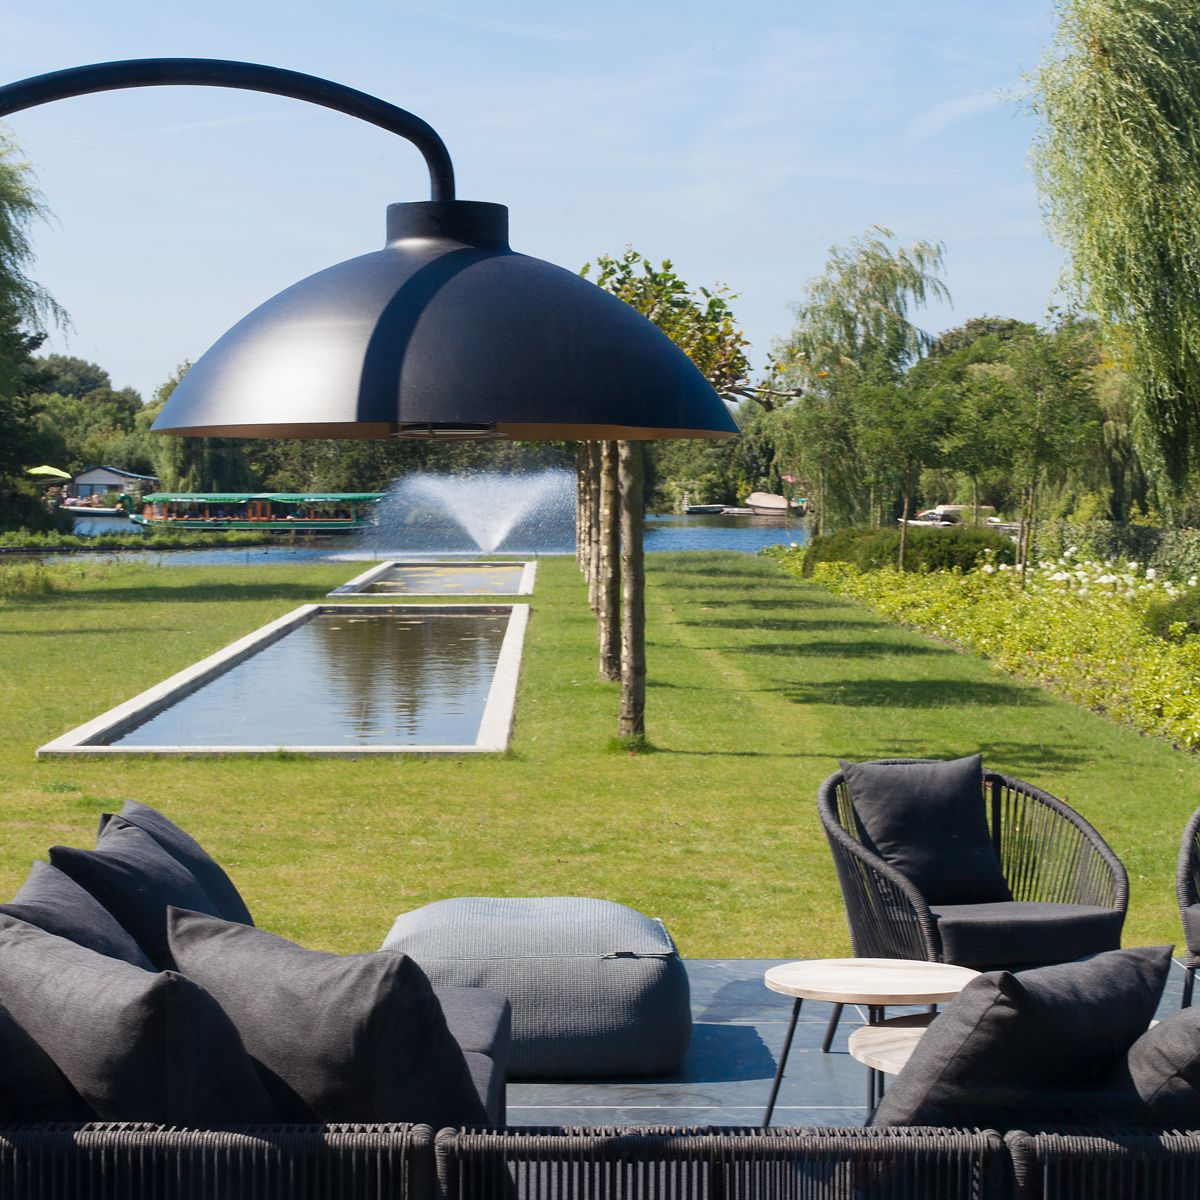 lampe chauffante exterieure dome arc heatsail zendart design. Black Bedroom Furniture Sets. Home Design Ideas